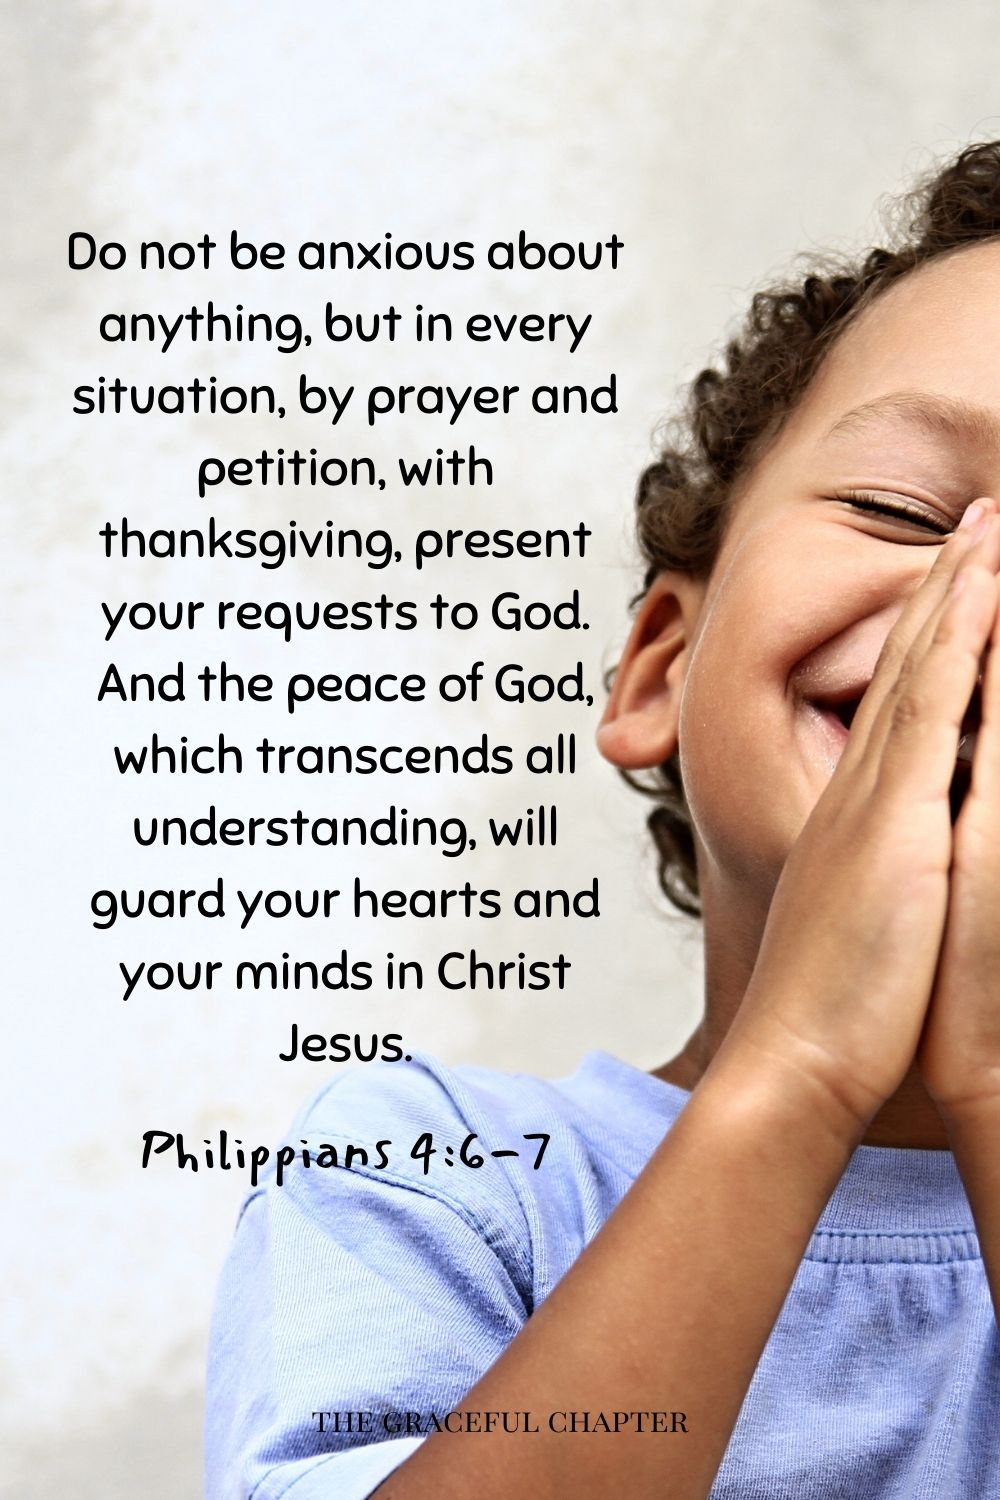 comforting bedtime bible verses- Do not be anxious about anything, but in every situation, by prayer and petition, with thanksgiving, present your requests to God. And the peace of God, which transcends all understanding, will guard your hearts and your minds in Christ Jesus. Philippians 4:6-7